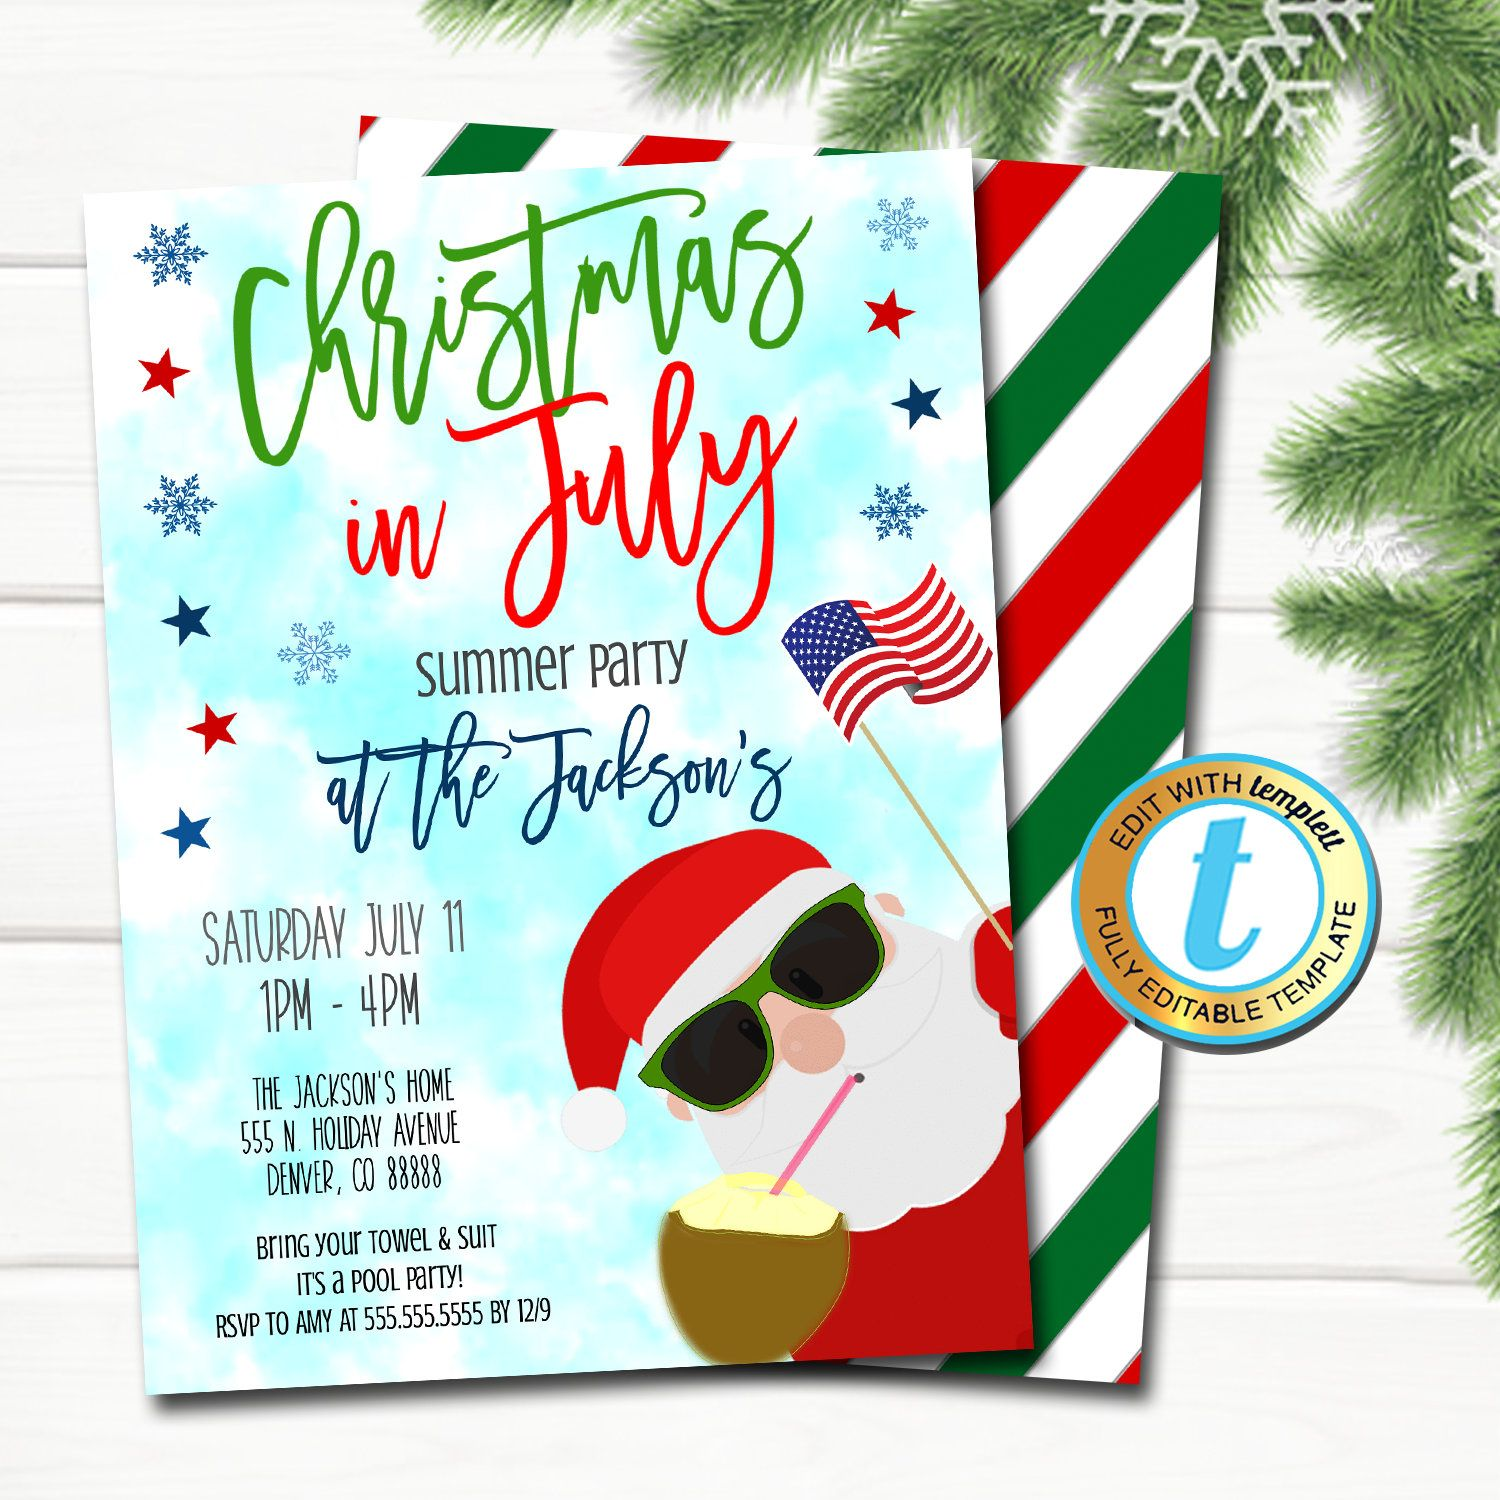 Christmas in July Invitation, Holiday Beach Santa Summer Party, Tropical Christmas in July Pool Luau Beach Invite Editable Template Download #holidaysinjuly